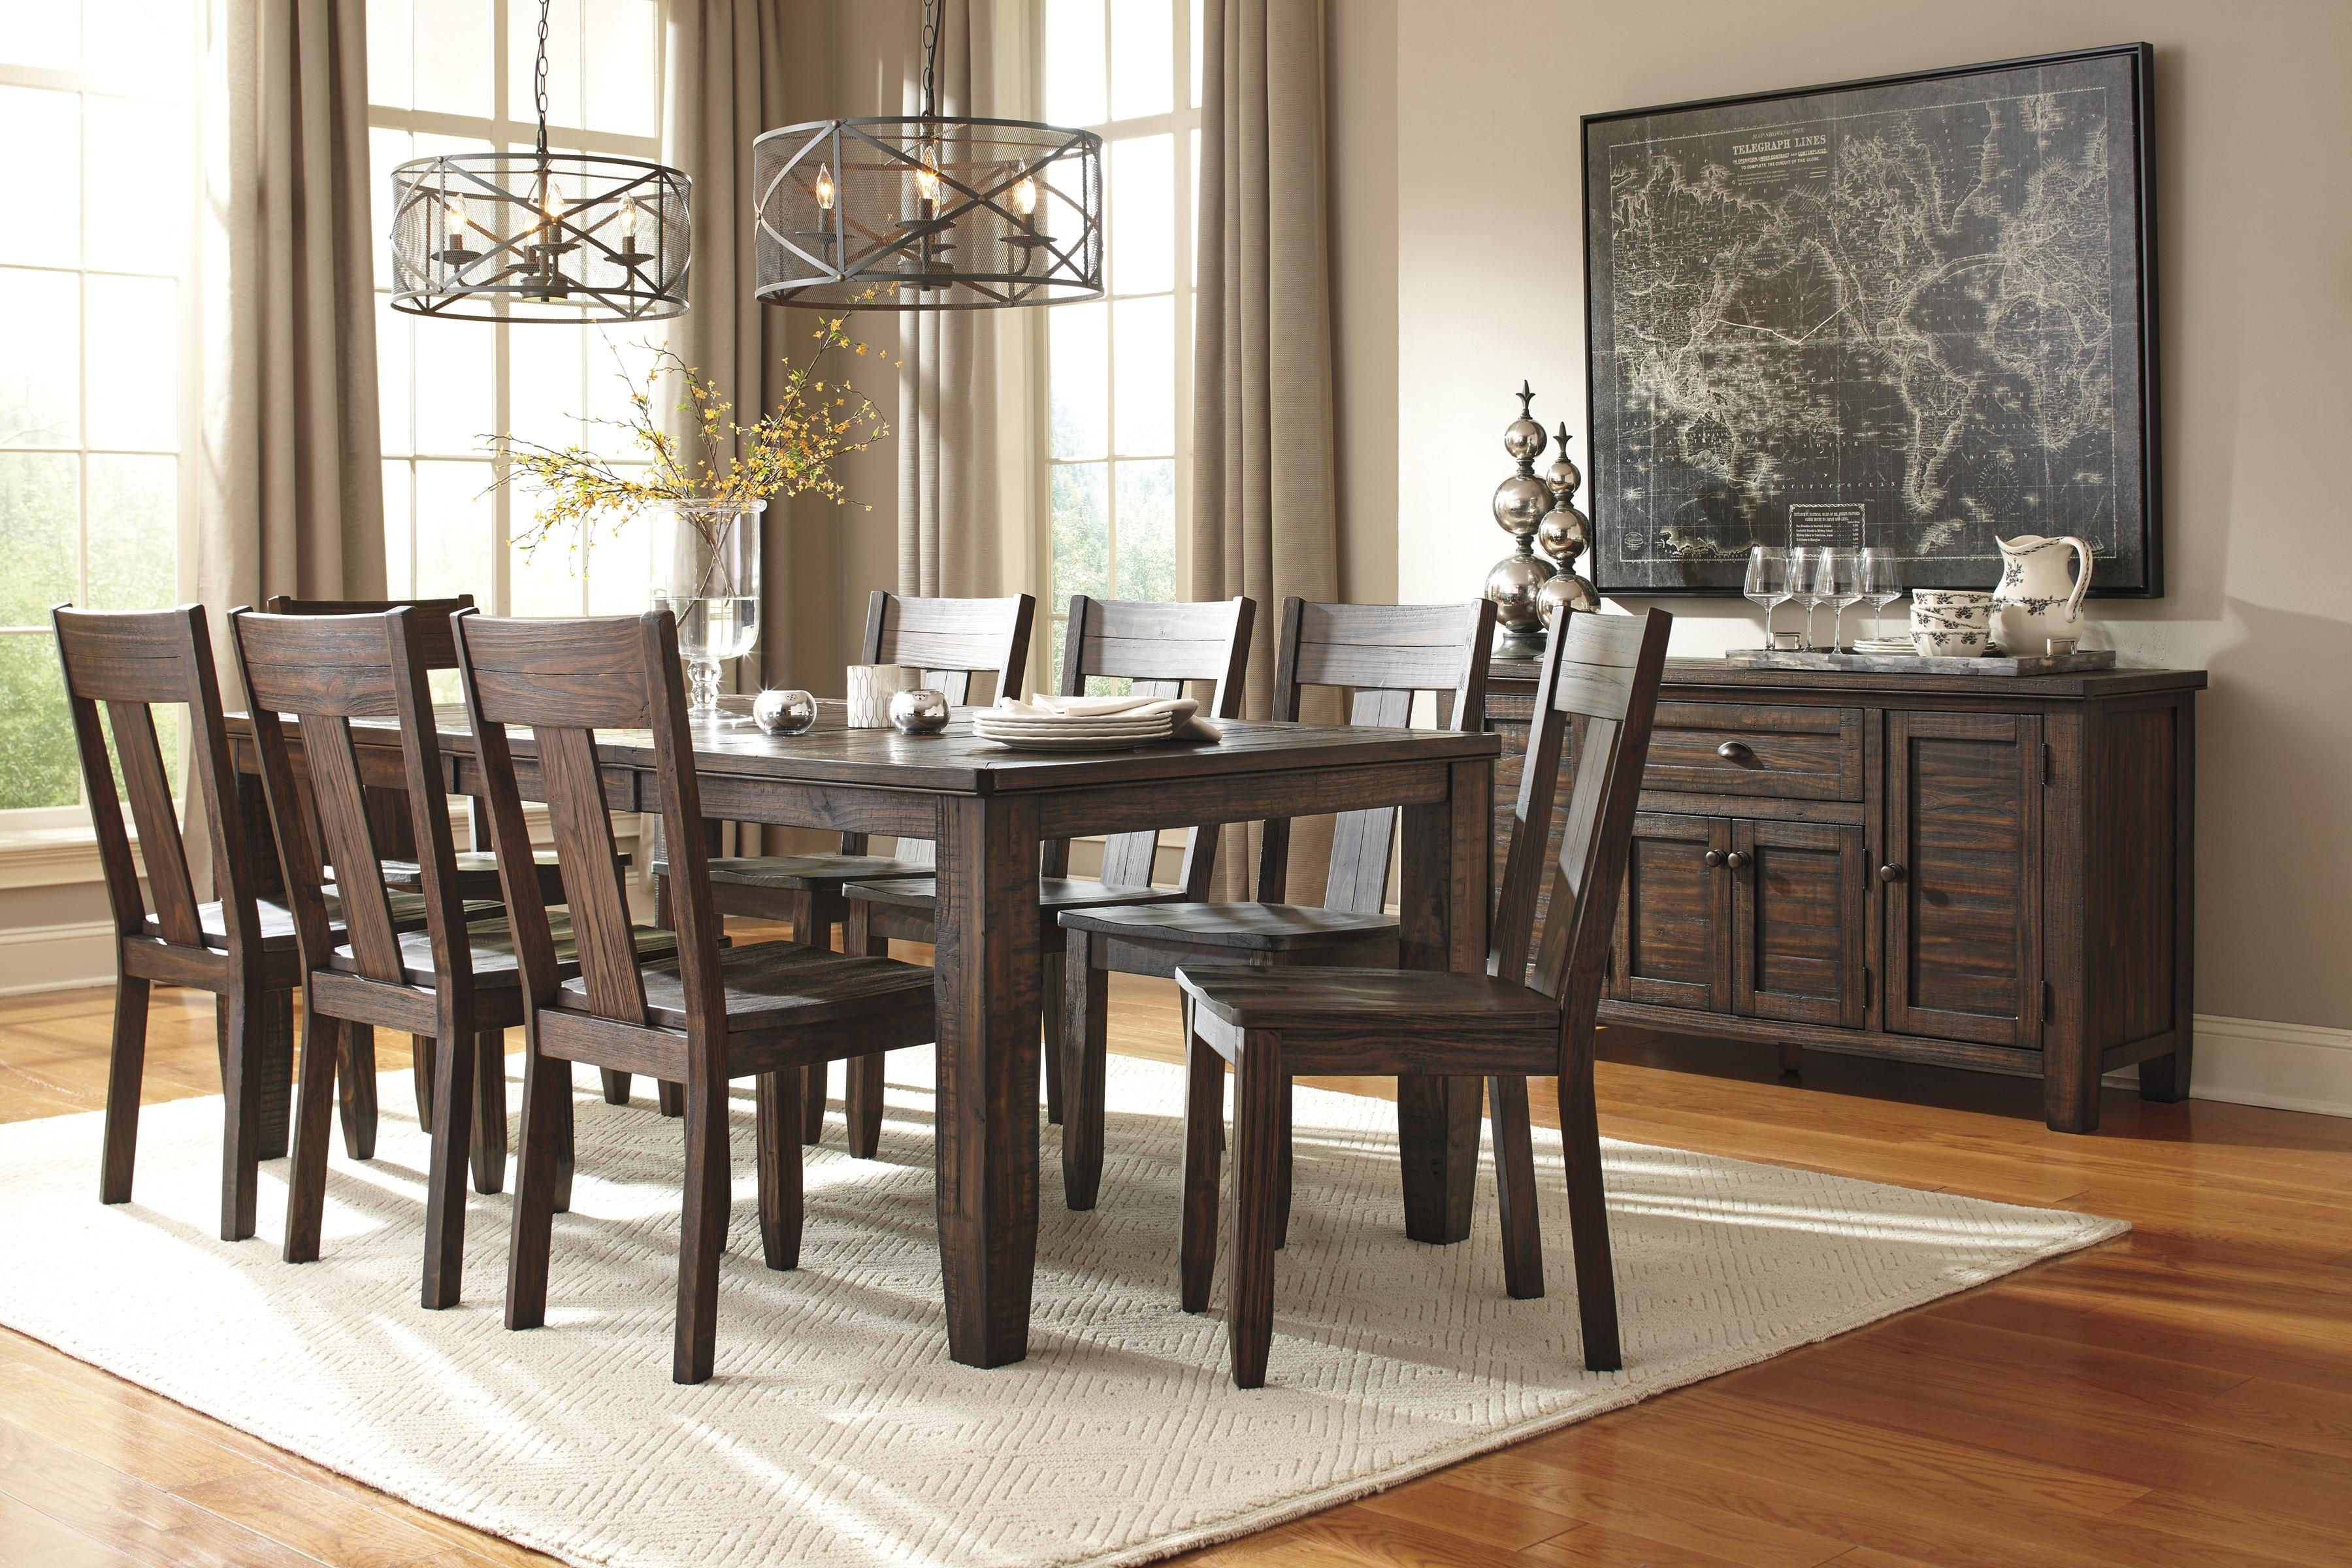 Signature Design by Ashley Trudell Casual Dining Room Group - Item Number: D658 Dining Room Group 9